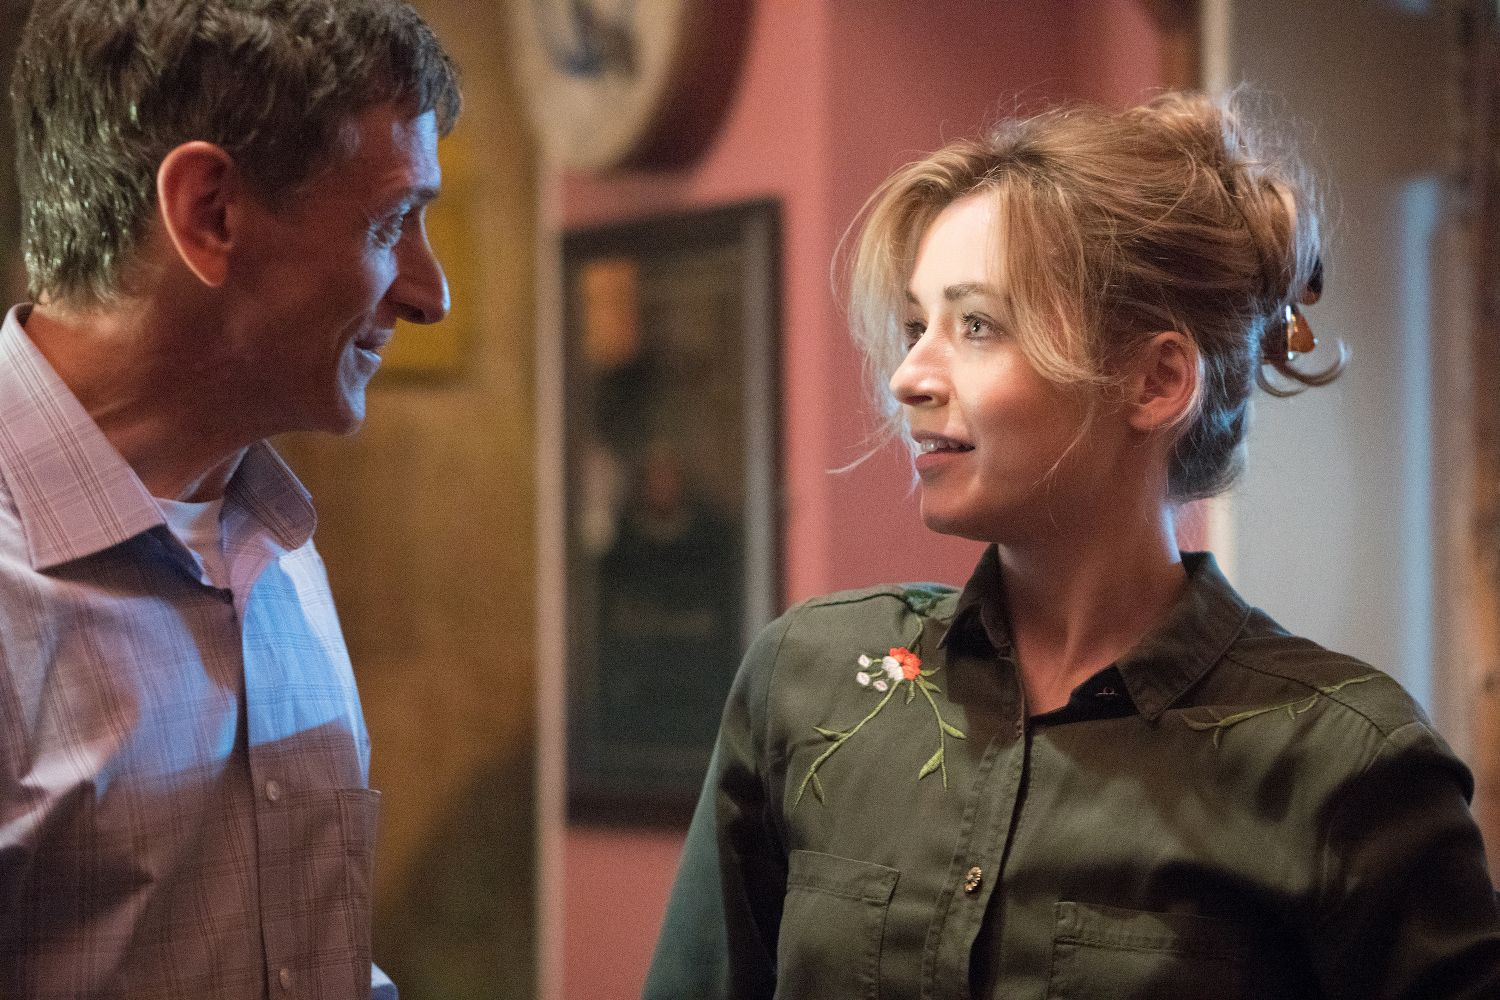 John Hawkes and Sarah Bolger in End of Sentence (Blue Finch Film Releasing)